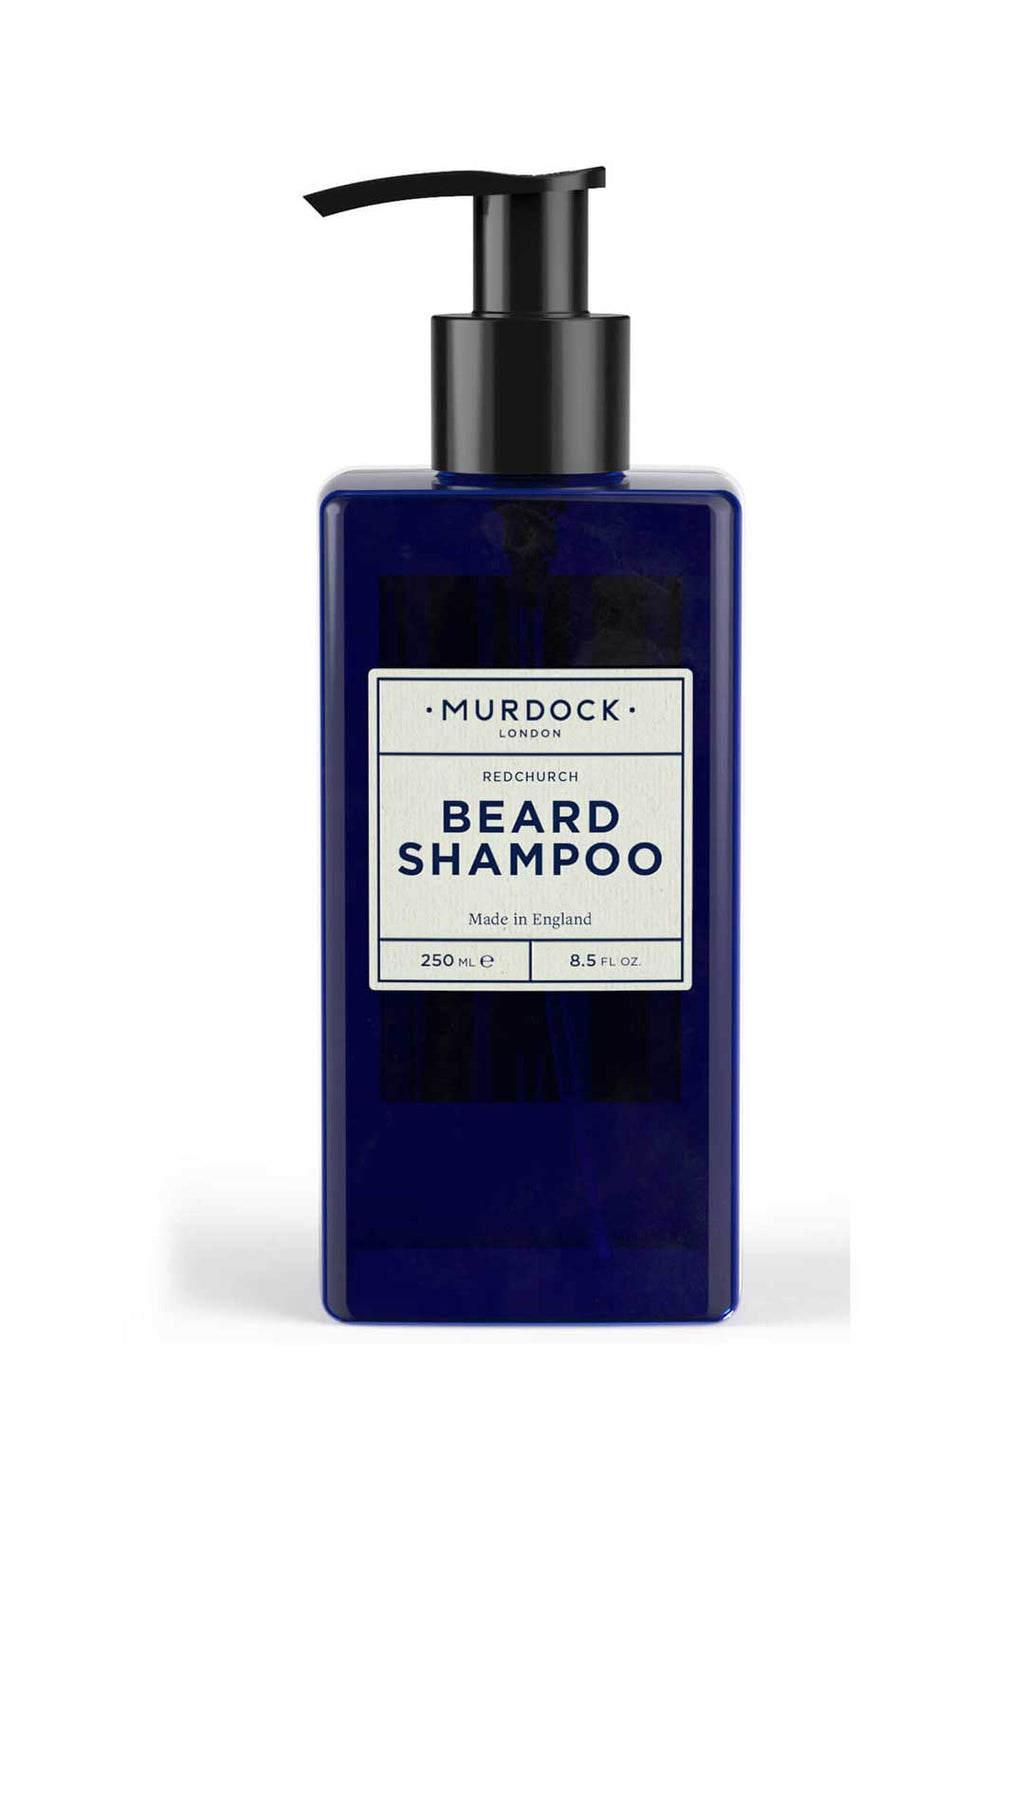 BEARD SHAMPOO - MURDOCK OF LONDON